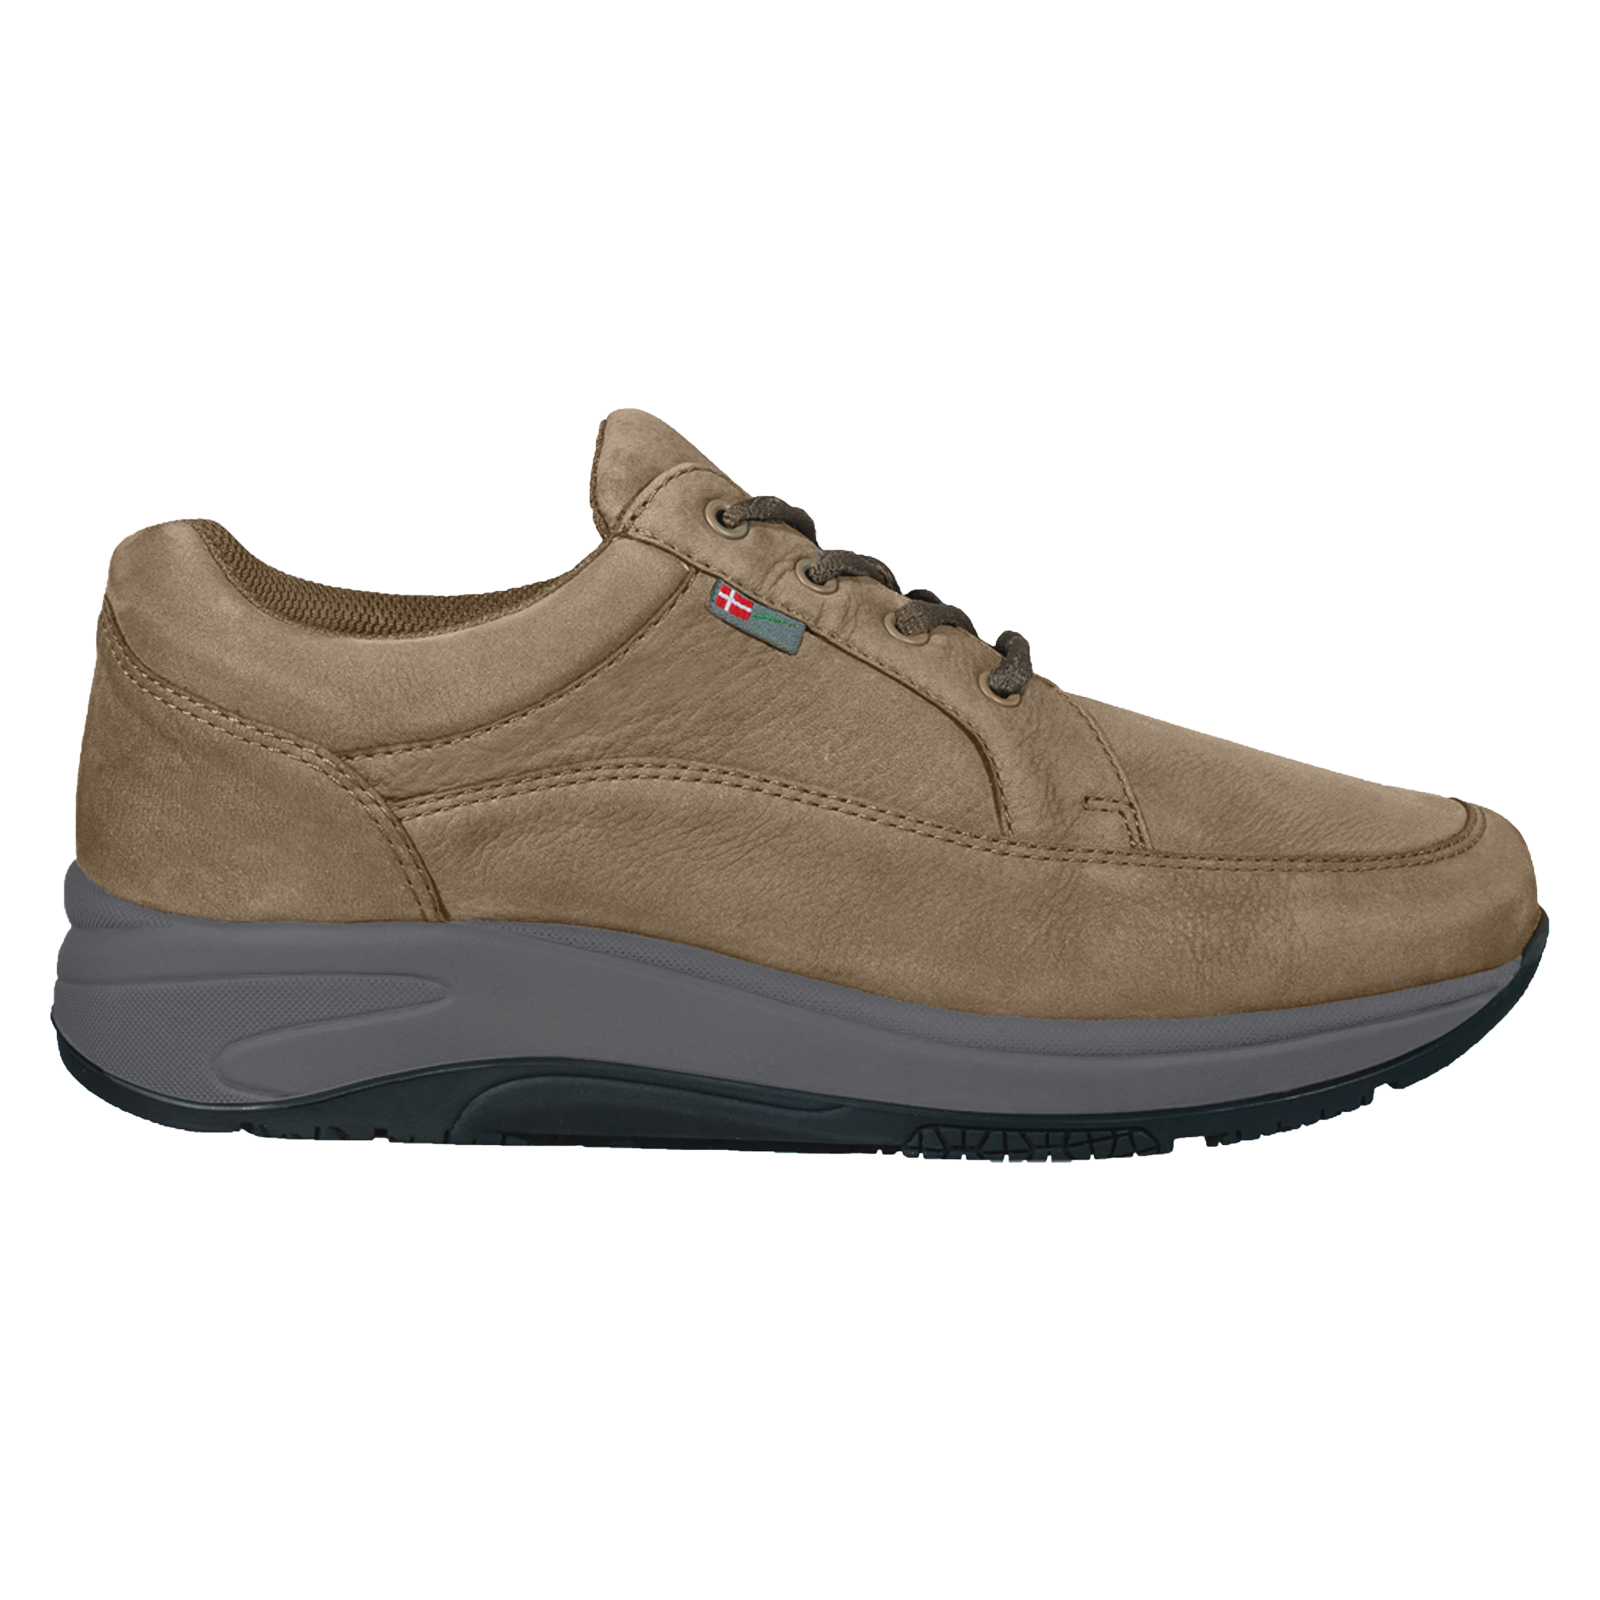 1024-104-20 Wallin Mover nubuck taupe grey/black heren comfortsneaker